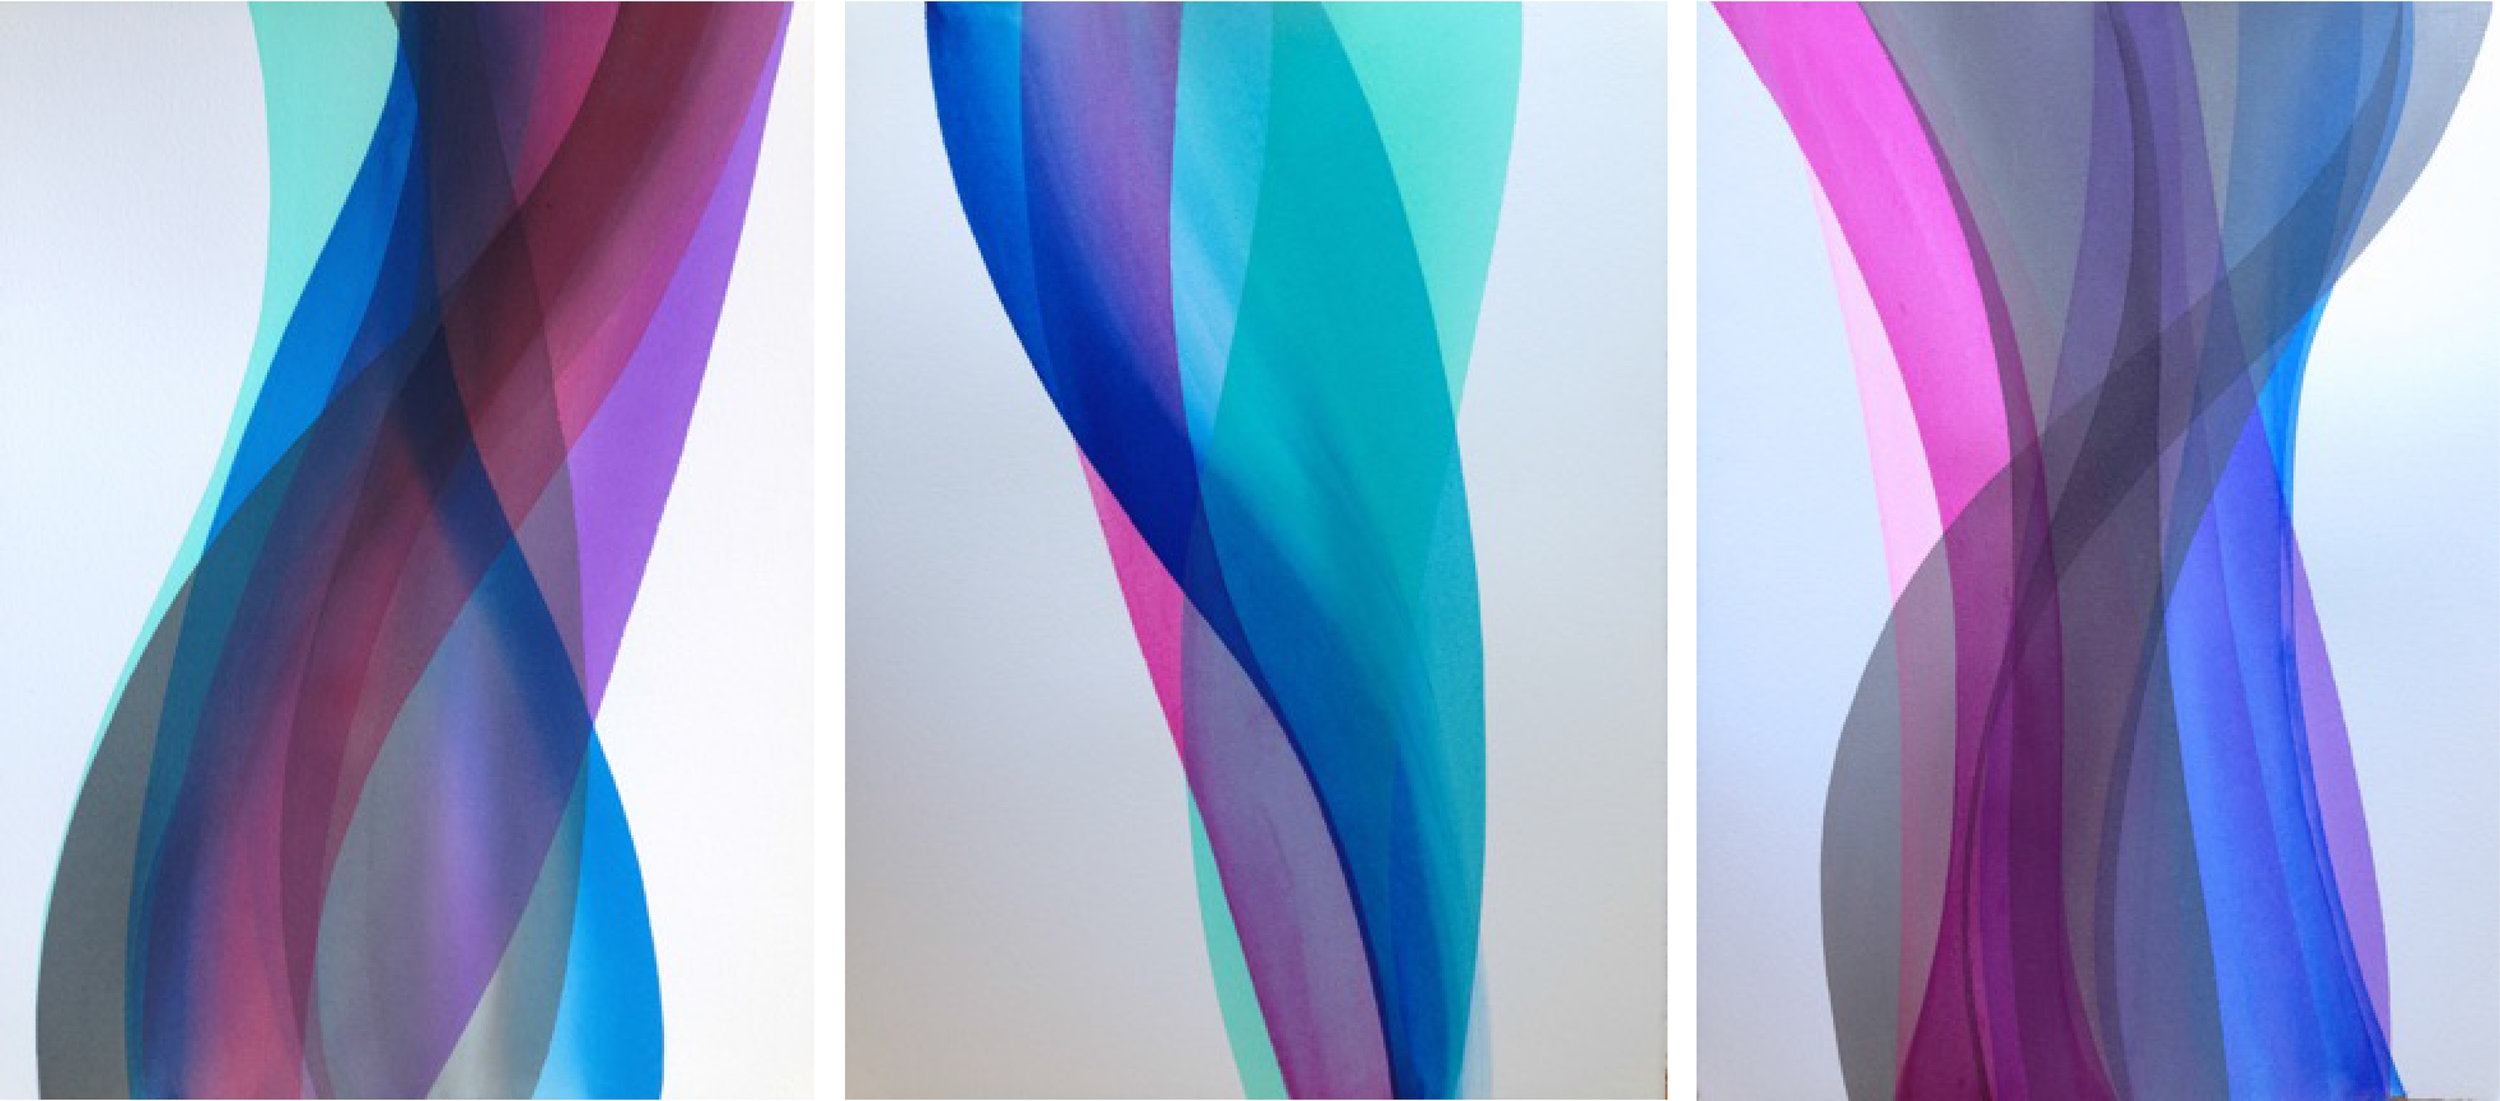 Paul Thomas Winter Winds, 2014 Acrylic on paper triptych